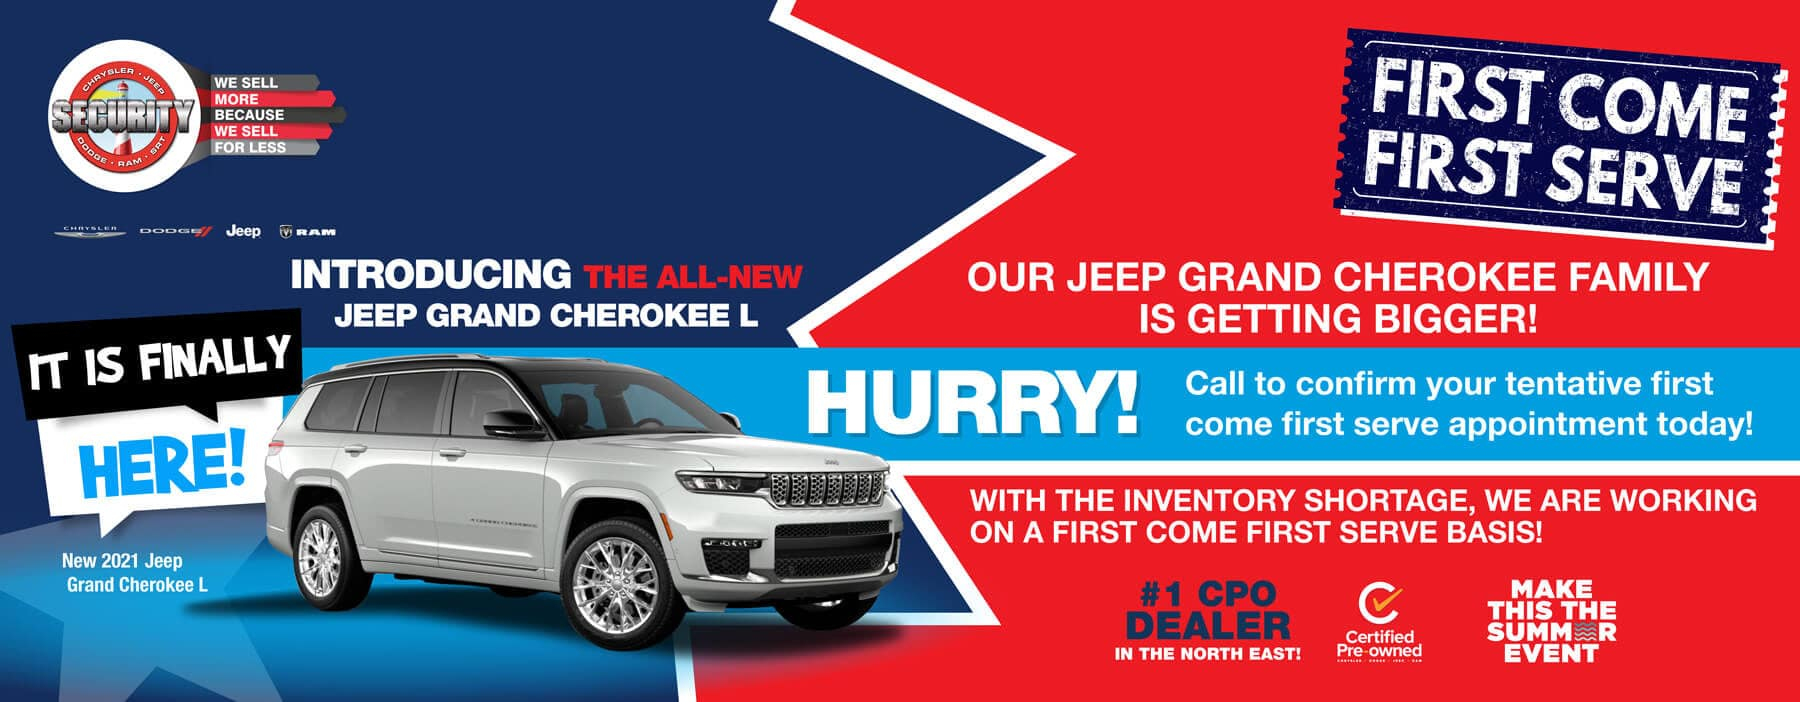 First Come First Serve Jeep Grand Cherokee